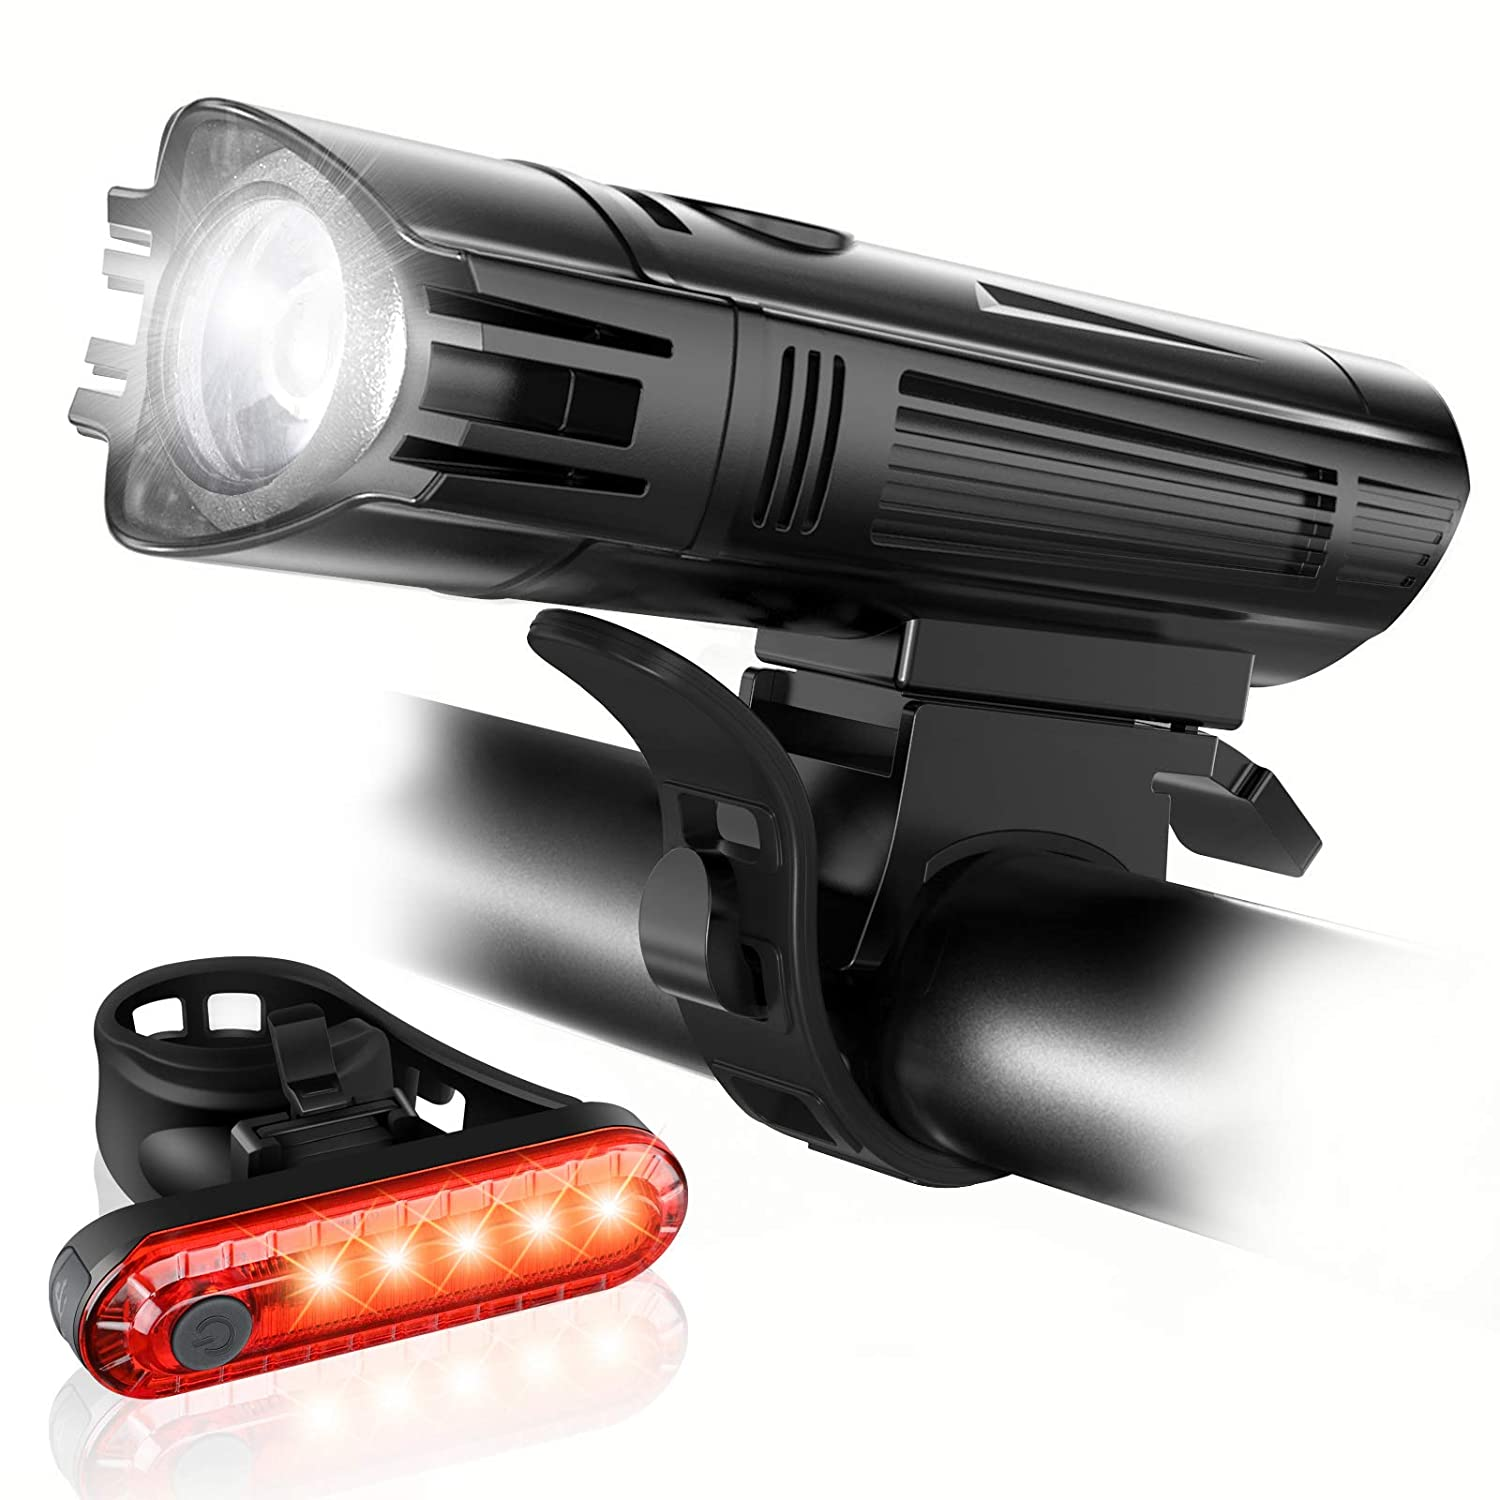 Ascher Ultra Bright USB Rechargeable Bike Light Set, 300 Lumens Front LED Headlight and Back Rear Lights, 4 Light Modes, Water Resistant, Easy to Install for Men Women Kids Road Mountain Cycling